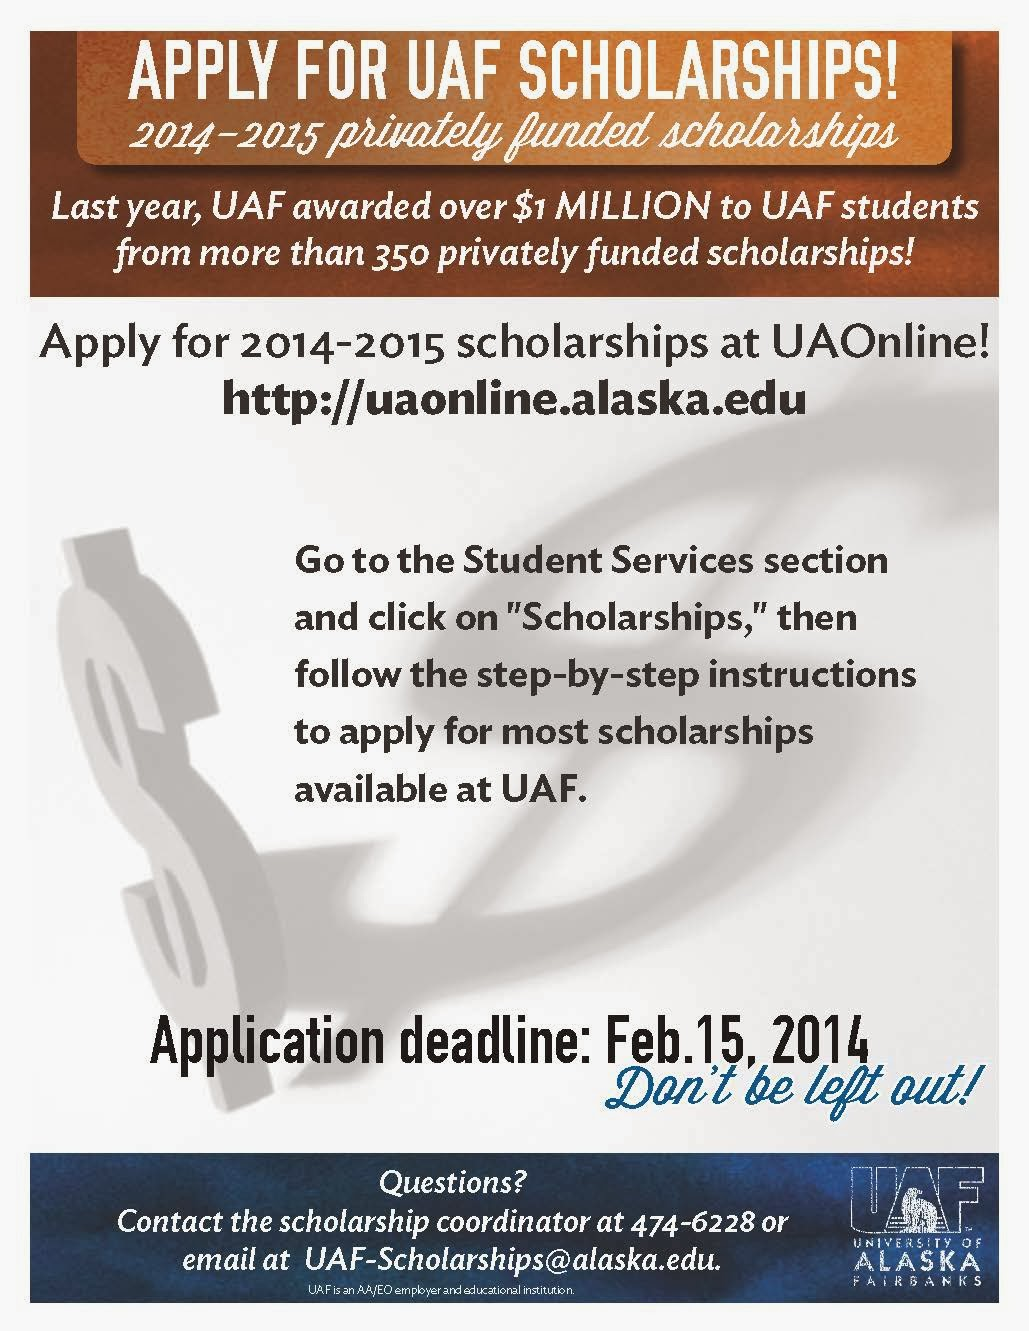 What's Happening: Scholarships! Apply NOW For 2014-2015